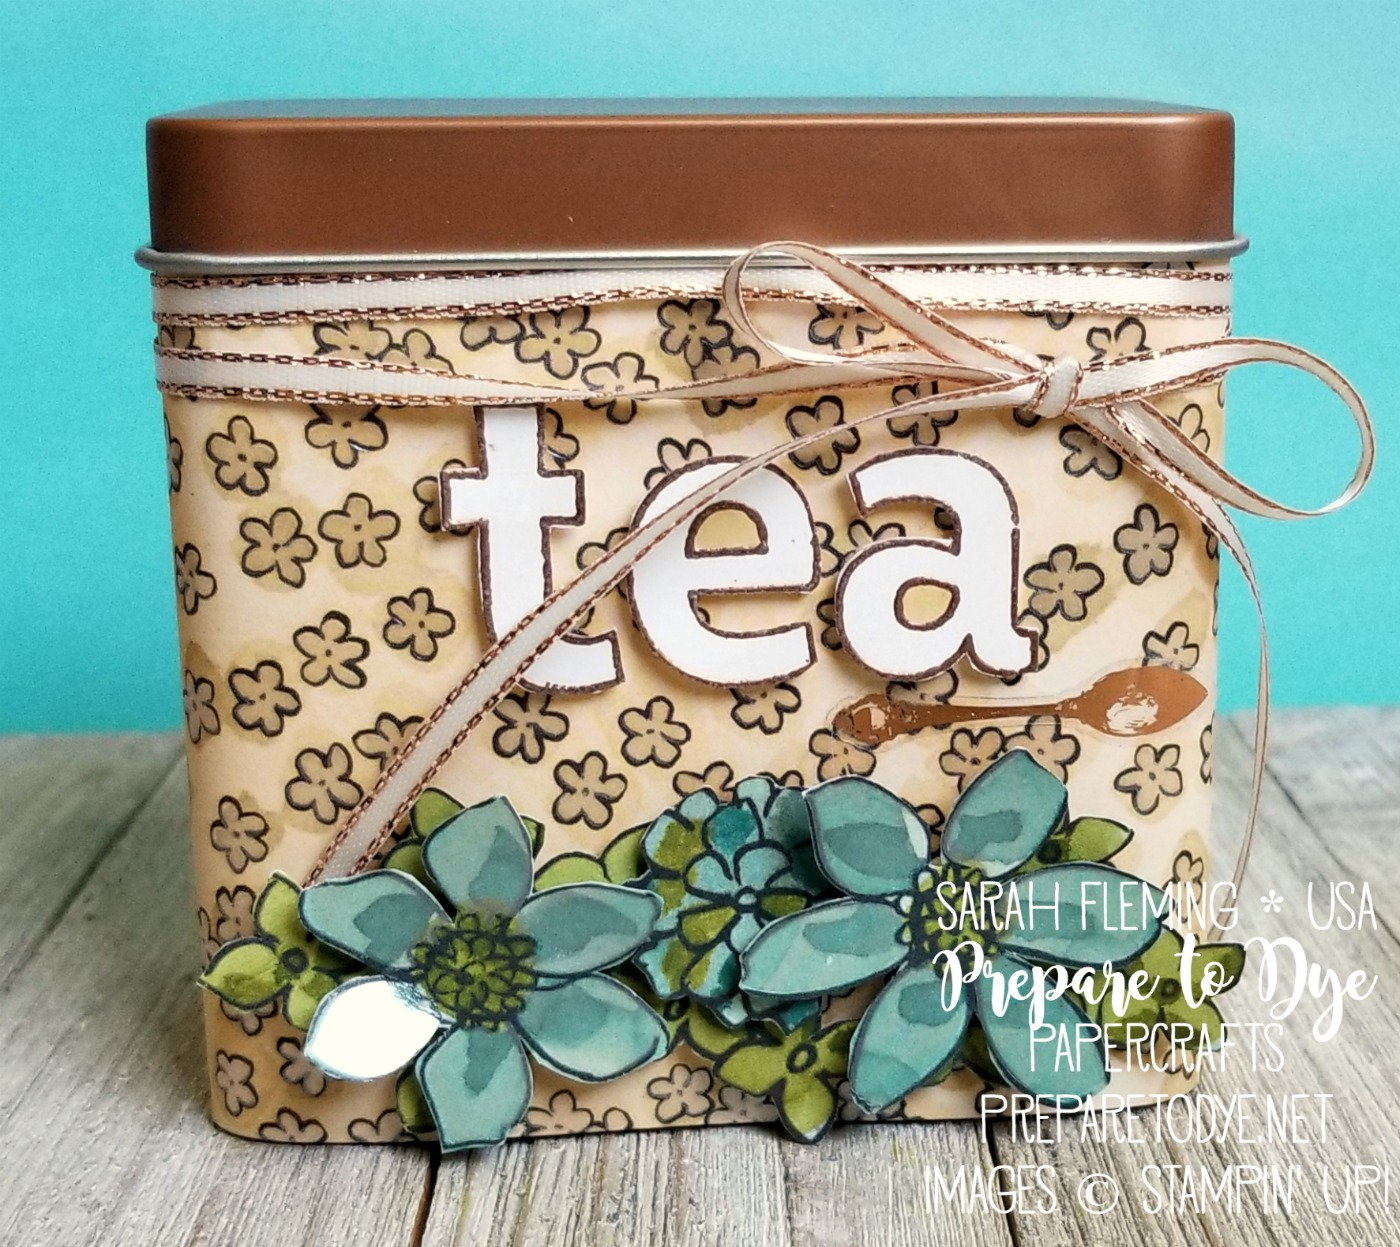 Stampin' Up! Share What You Love paper with Copper Tea Tins and Lined Alphabet - 2018-2019 annual catalog - Sarah Fleming - Prepare to Dye Papercrafts